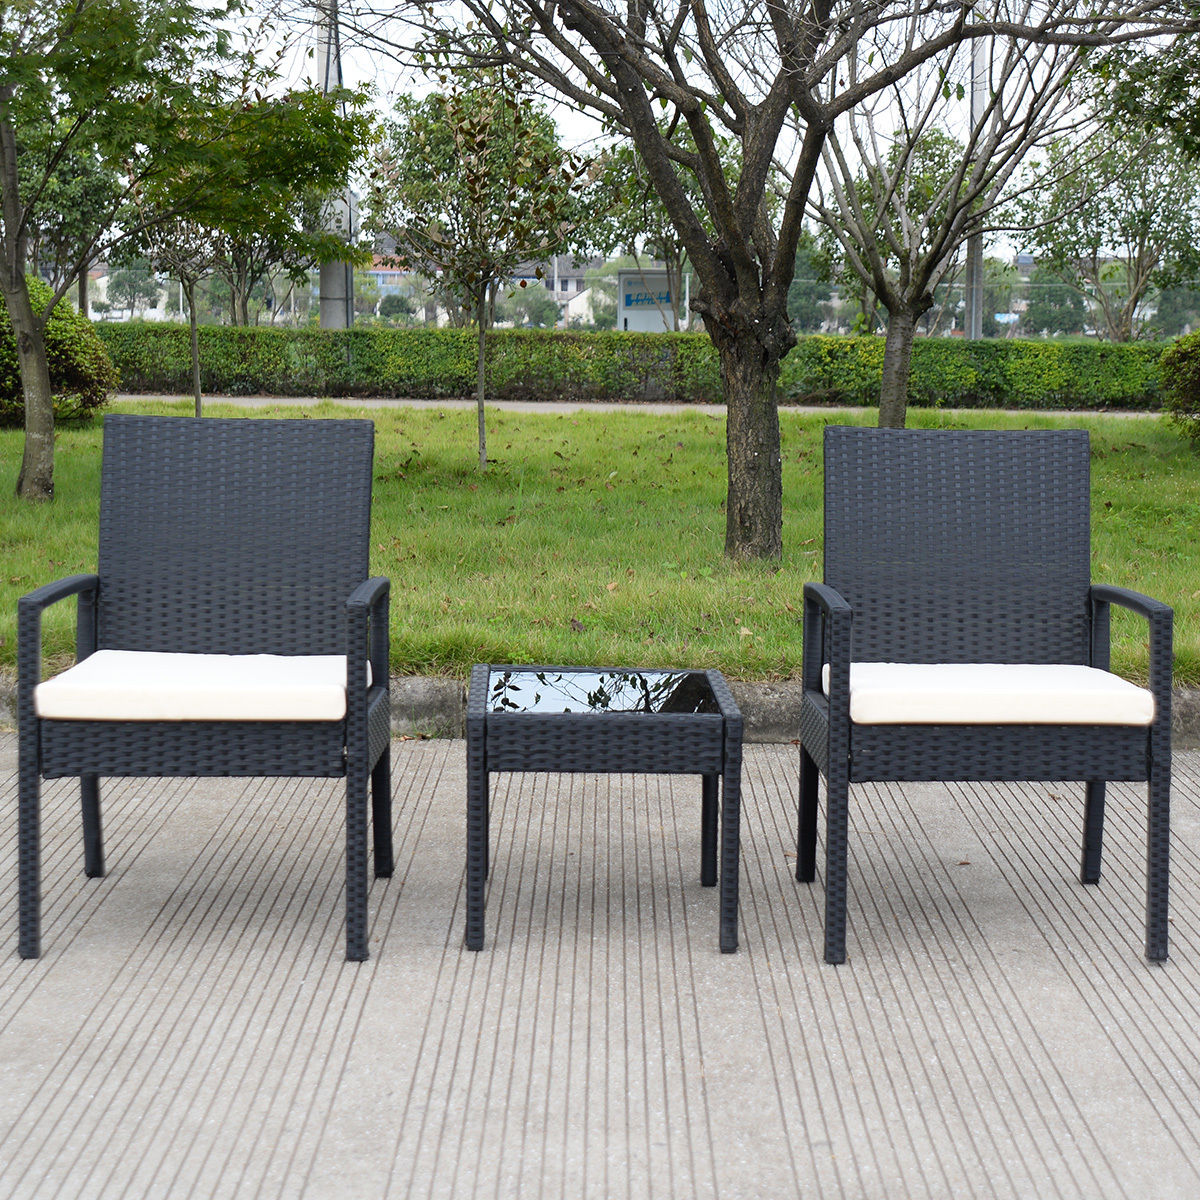 3 PS Outdoor Rattan Patio Furniture Set Backyard Garden Furniture Image 3